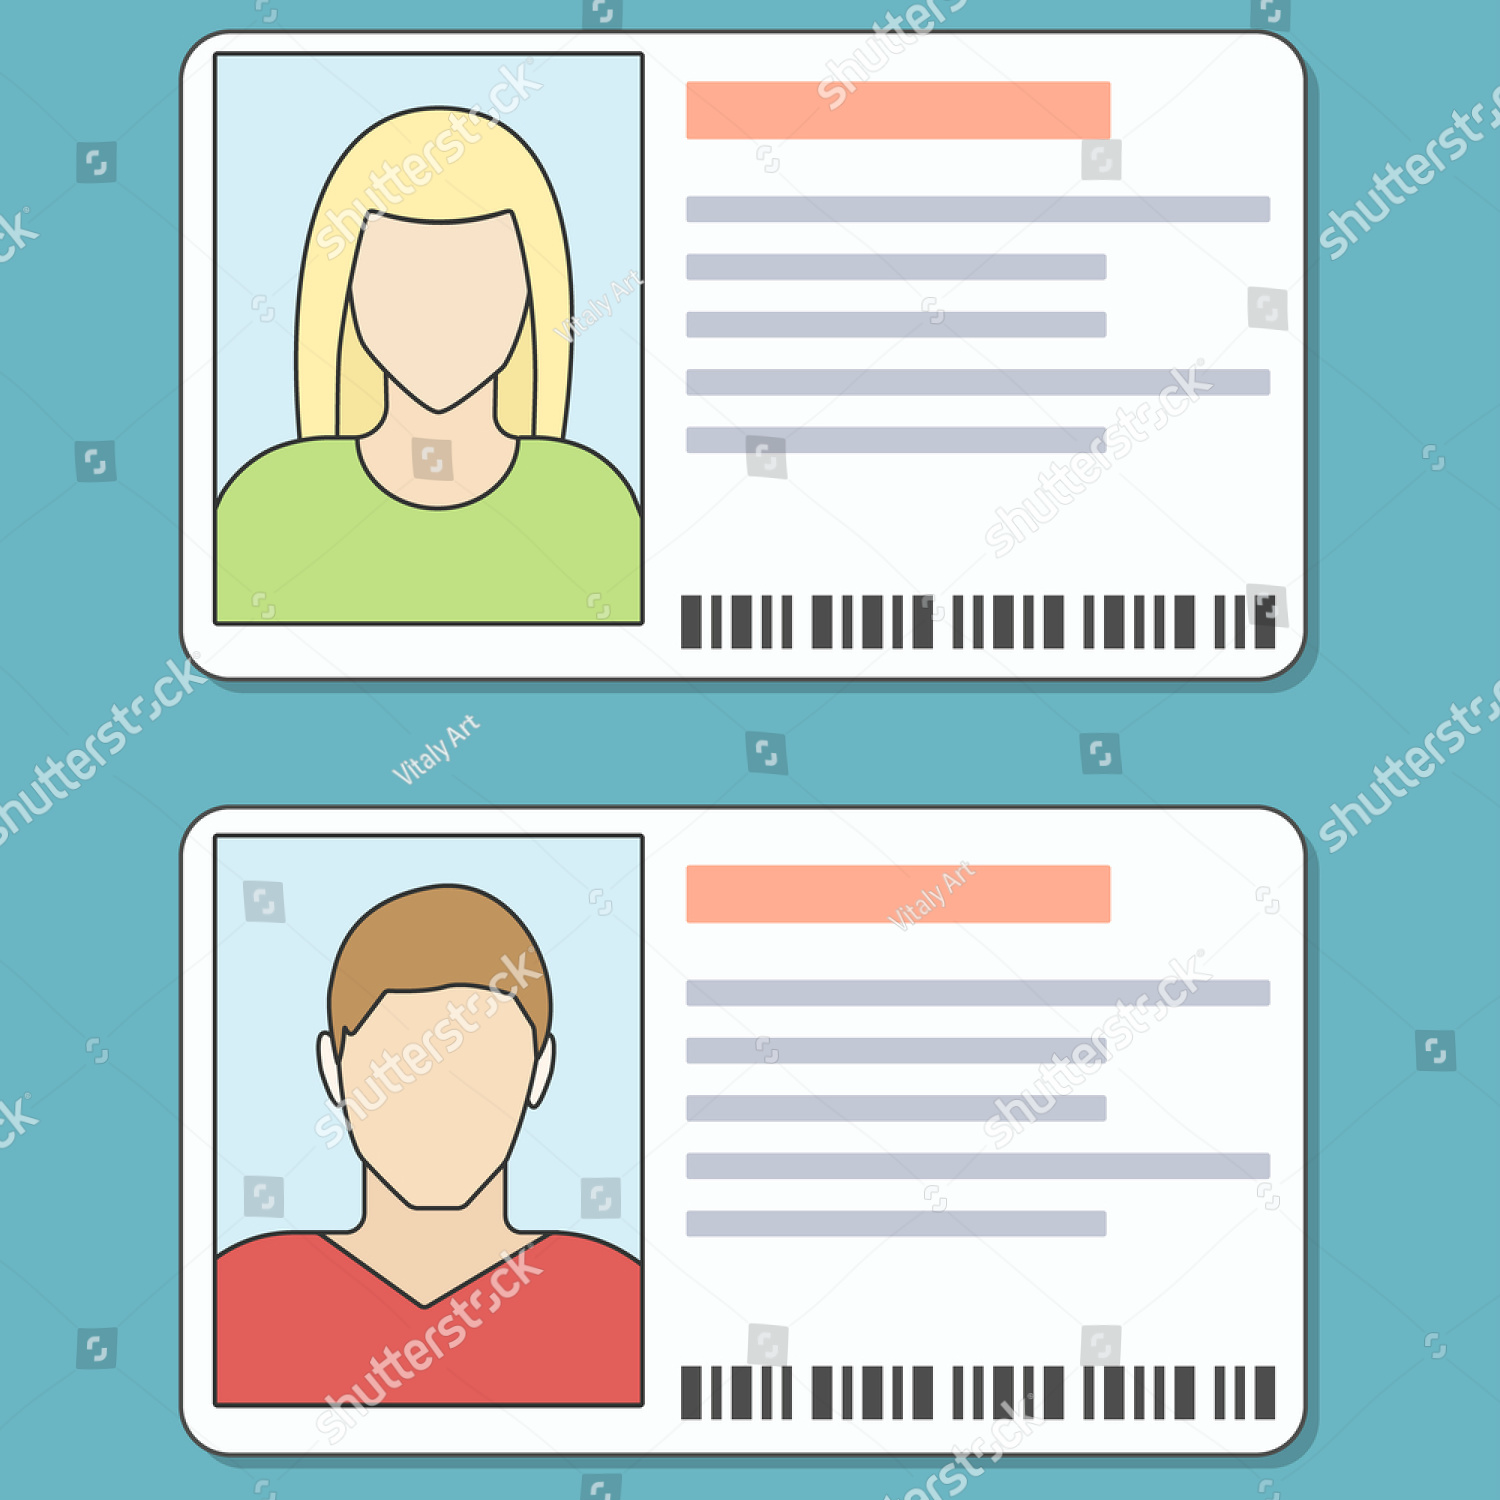 10 student card templates editable psd ai vector eps format download free premium templates for Postcard template ai